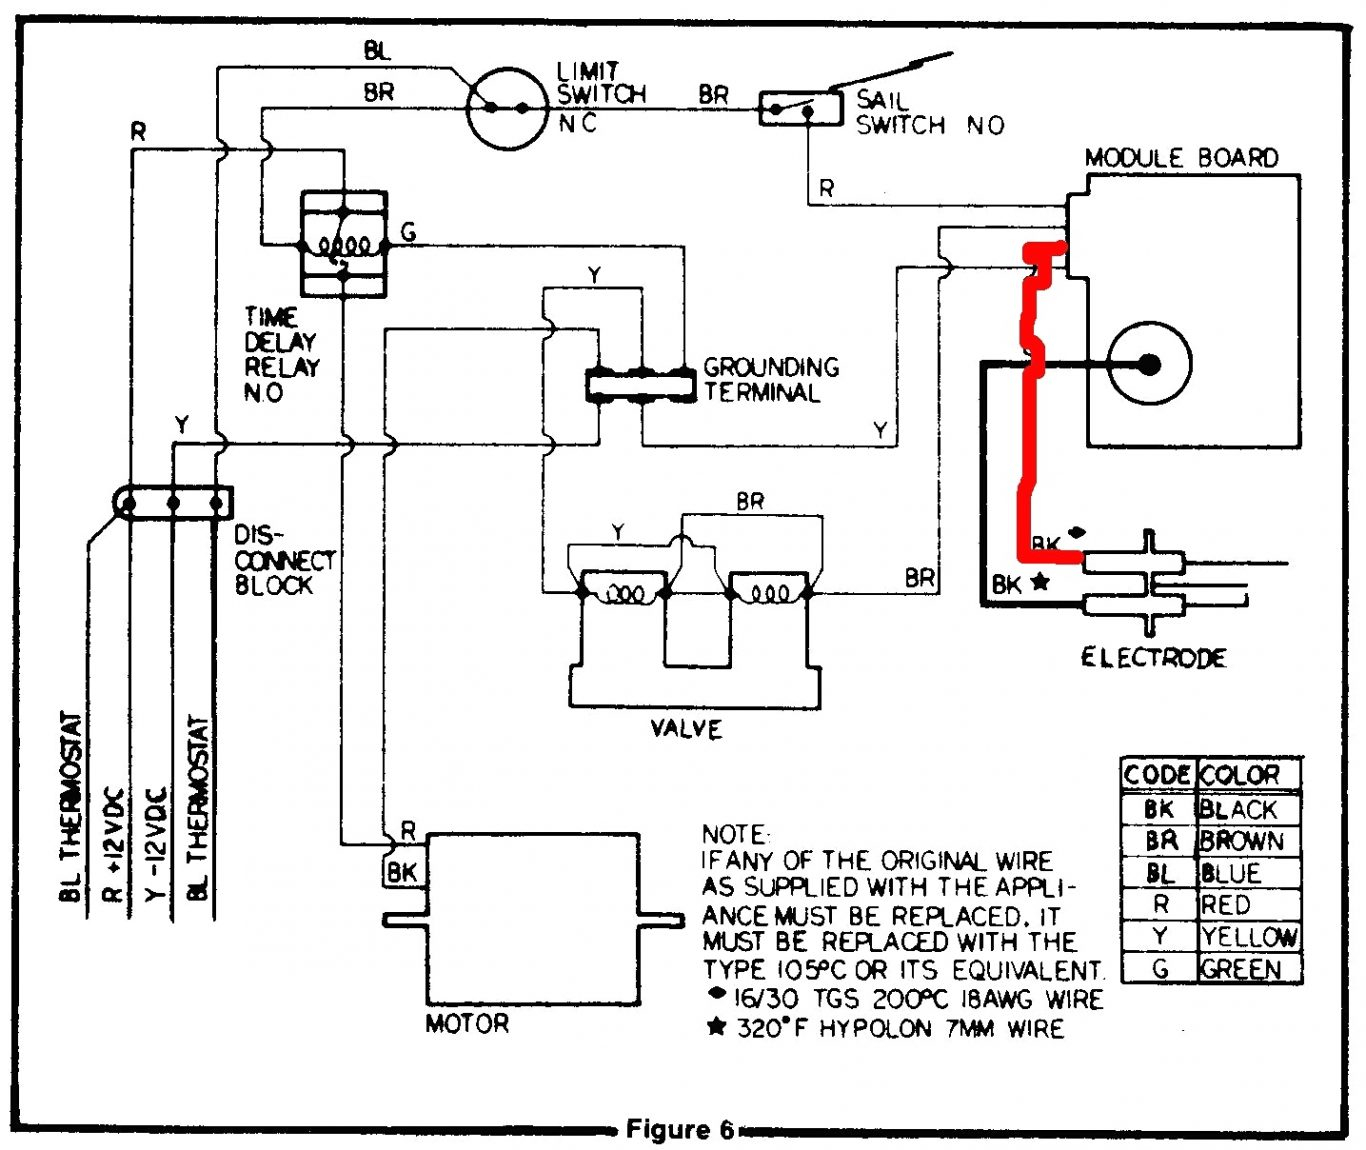 trane heat pump thermostat wiring diagram images of trane heat pump